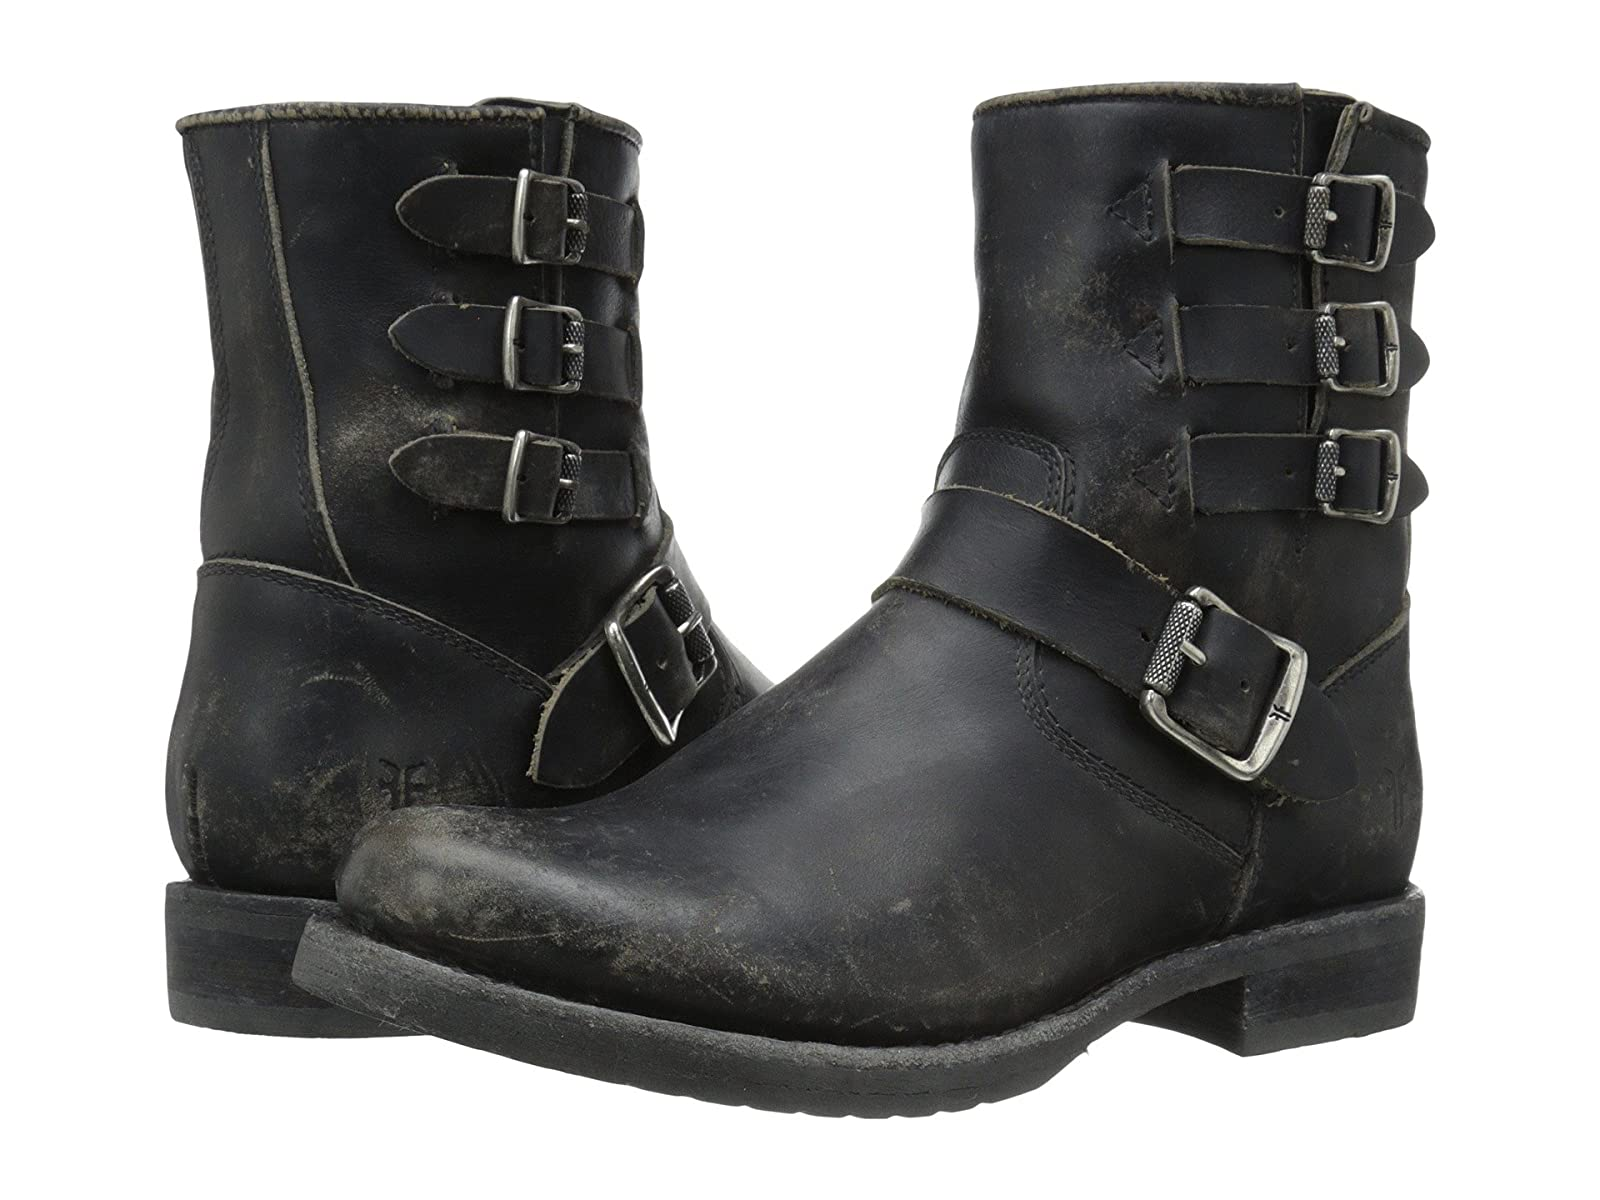 Frye Veronica Belted ShortCheap and distinctive eye-catching shoes